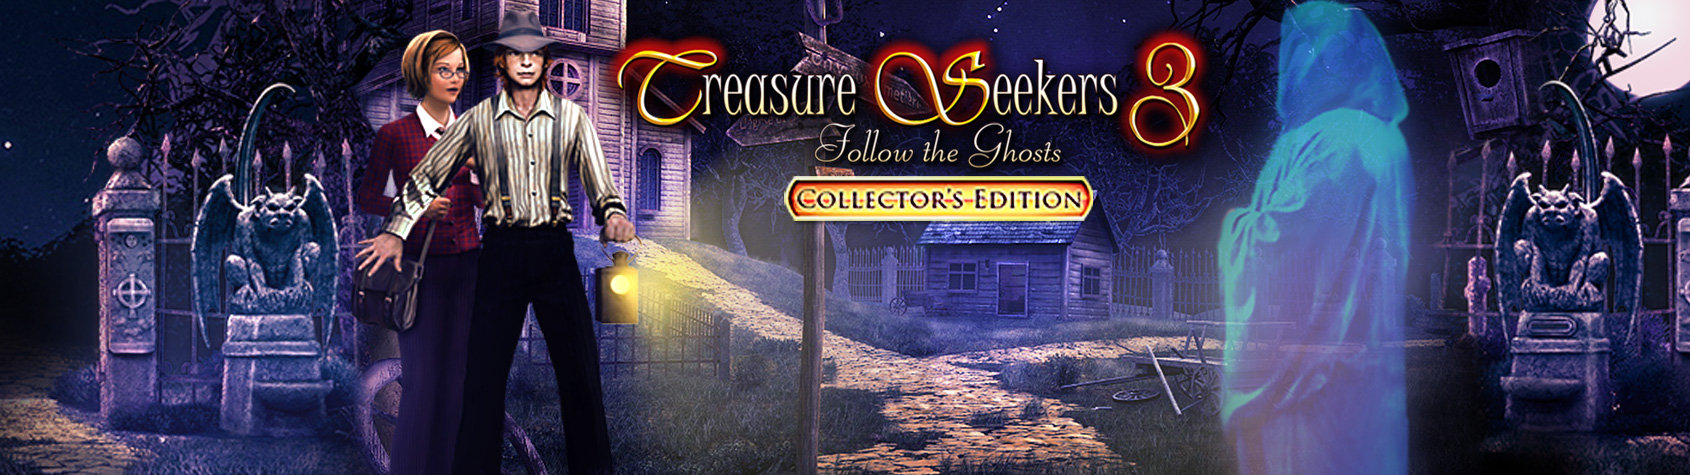 Treasure Seekers 3: Follow the Ghosts